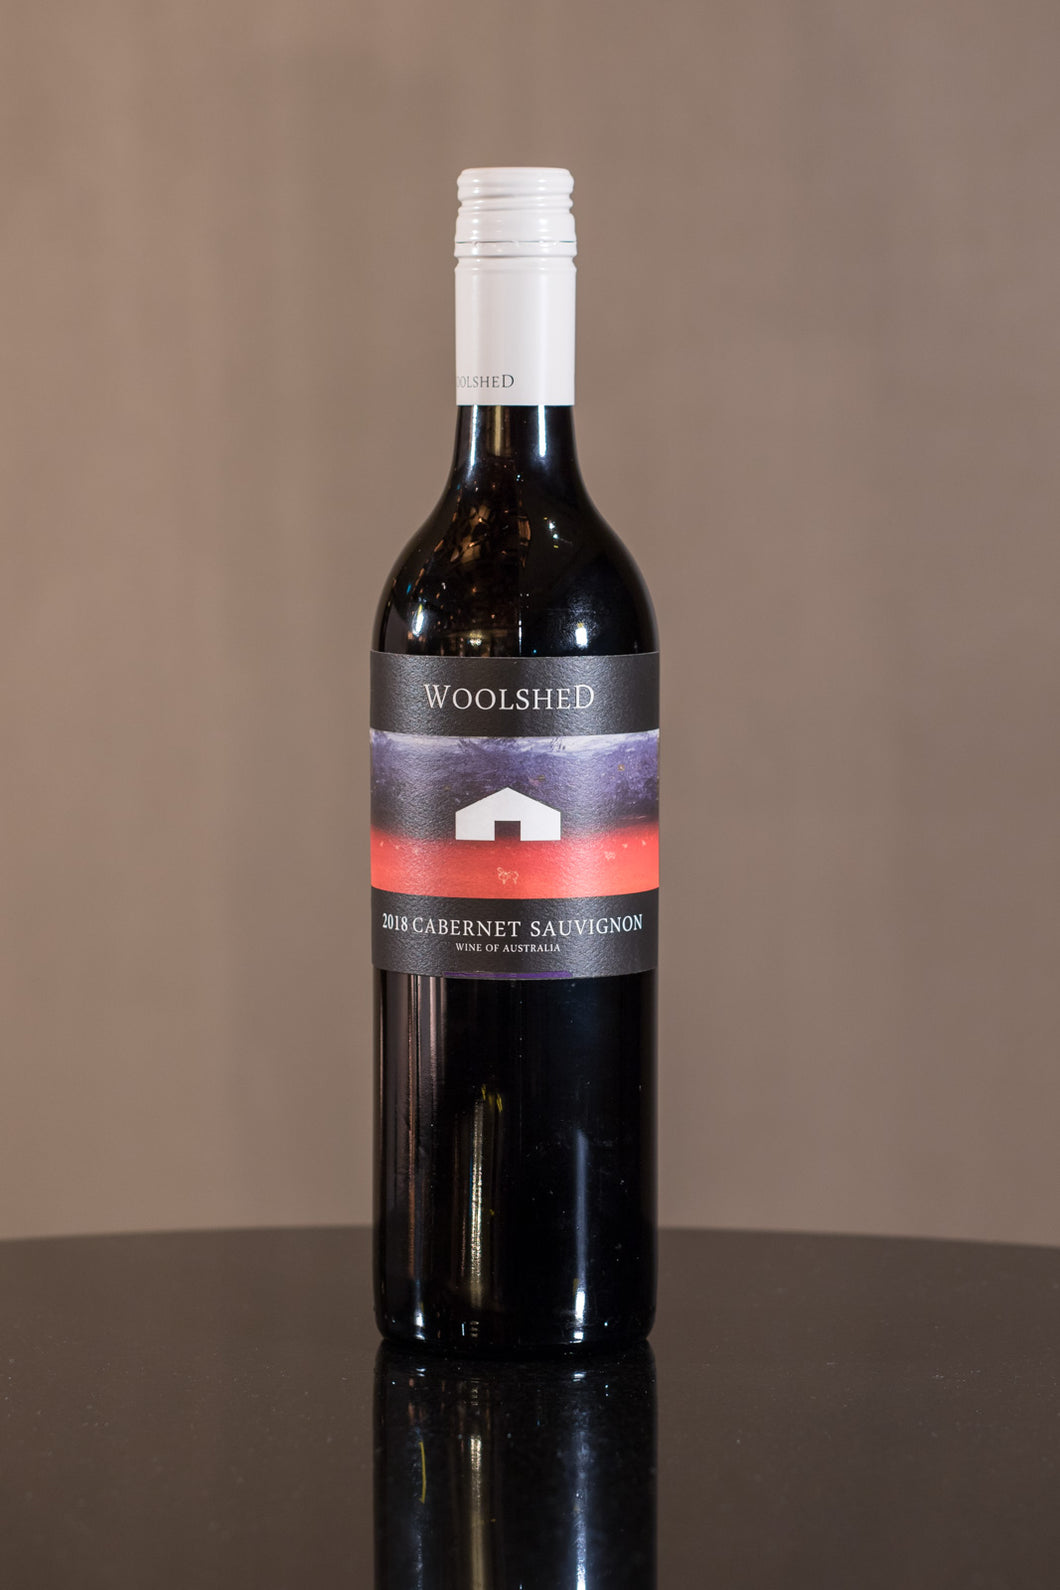 Woolshed, Cabernet Sauvignon